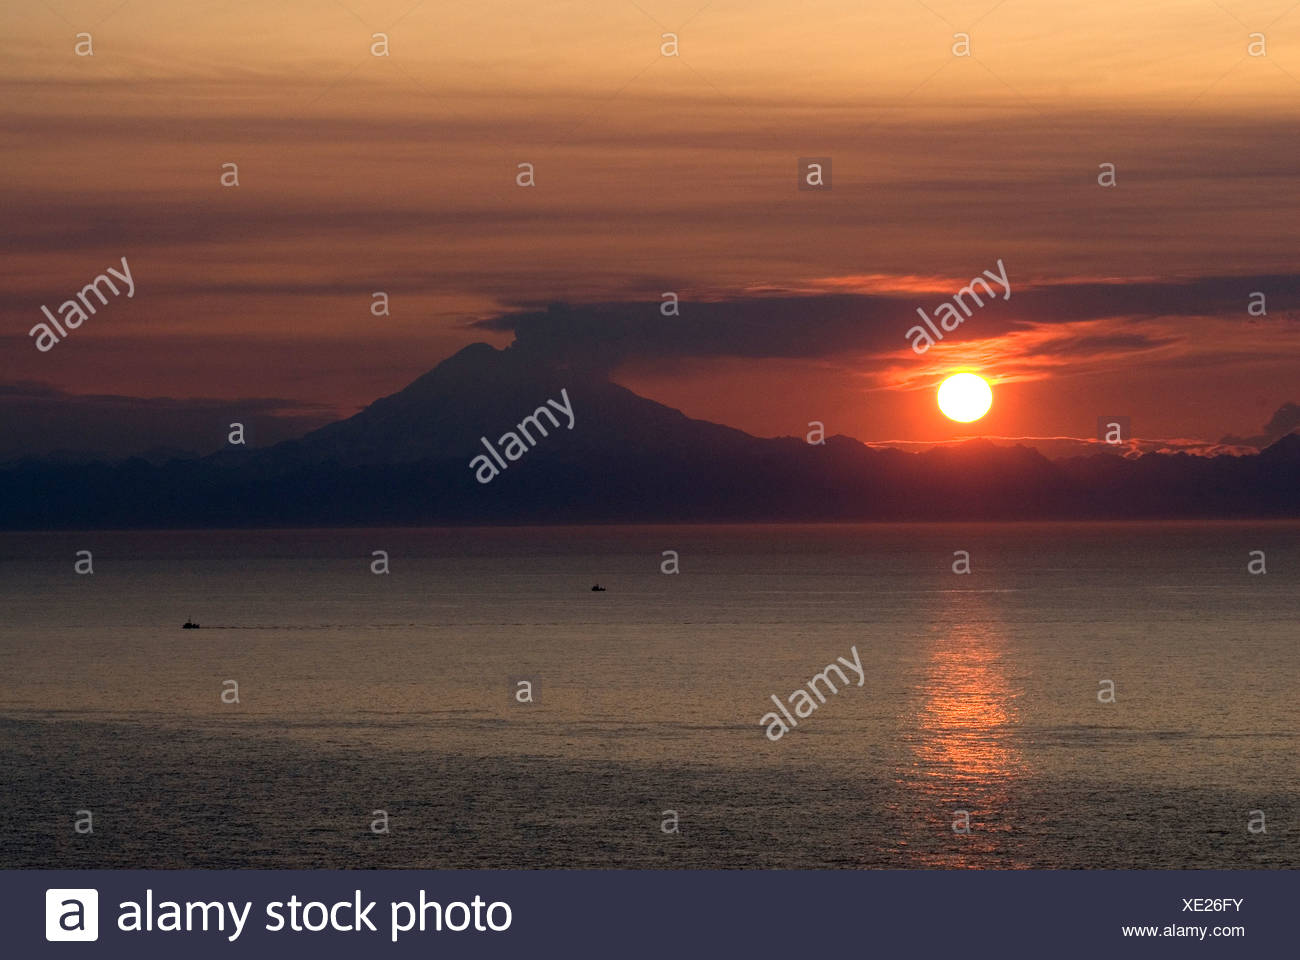 Alaska, Mt Redoubt, volcano i n an active phase seen erupting across the waters of Cook Inlet - Stock Image